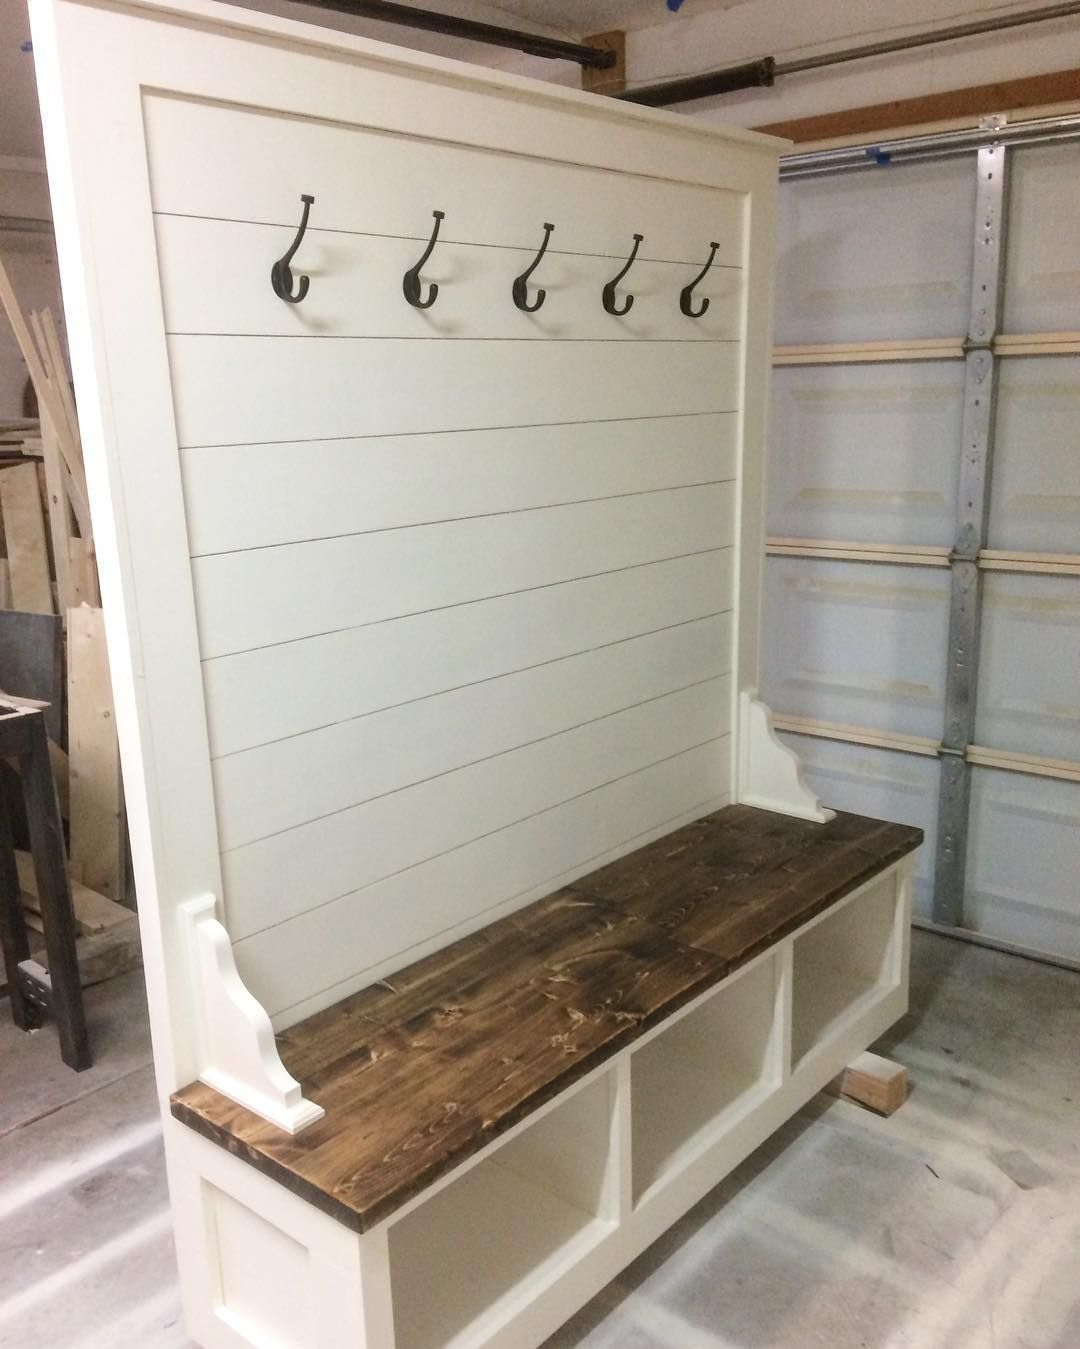 Awesome Builds Shiplap Hall Tree Bench Shiplap Halltree Customfurniture Bench Hall Tree Hall Tree Bench Diy Furniture